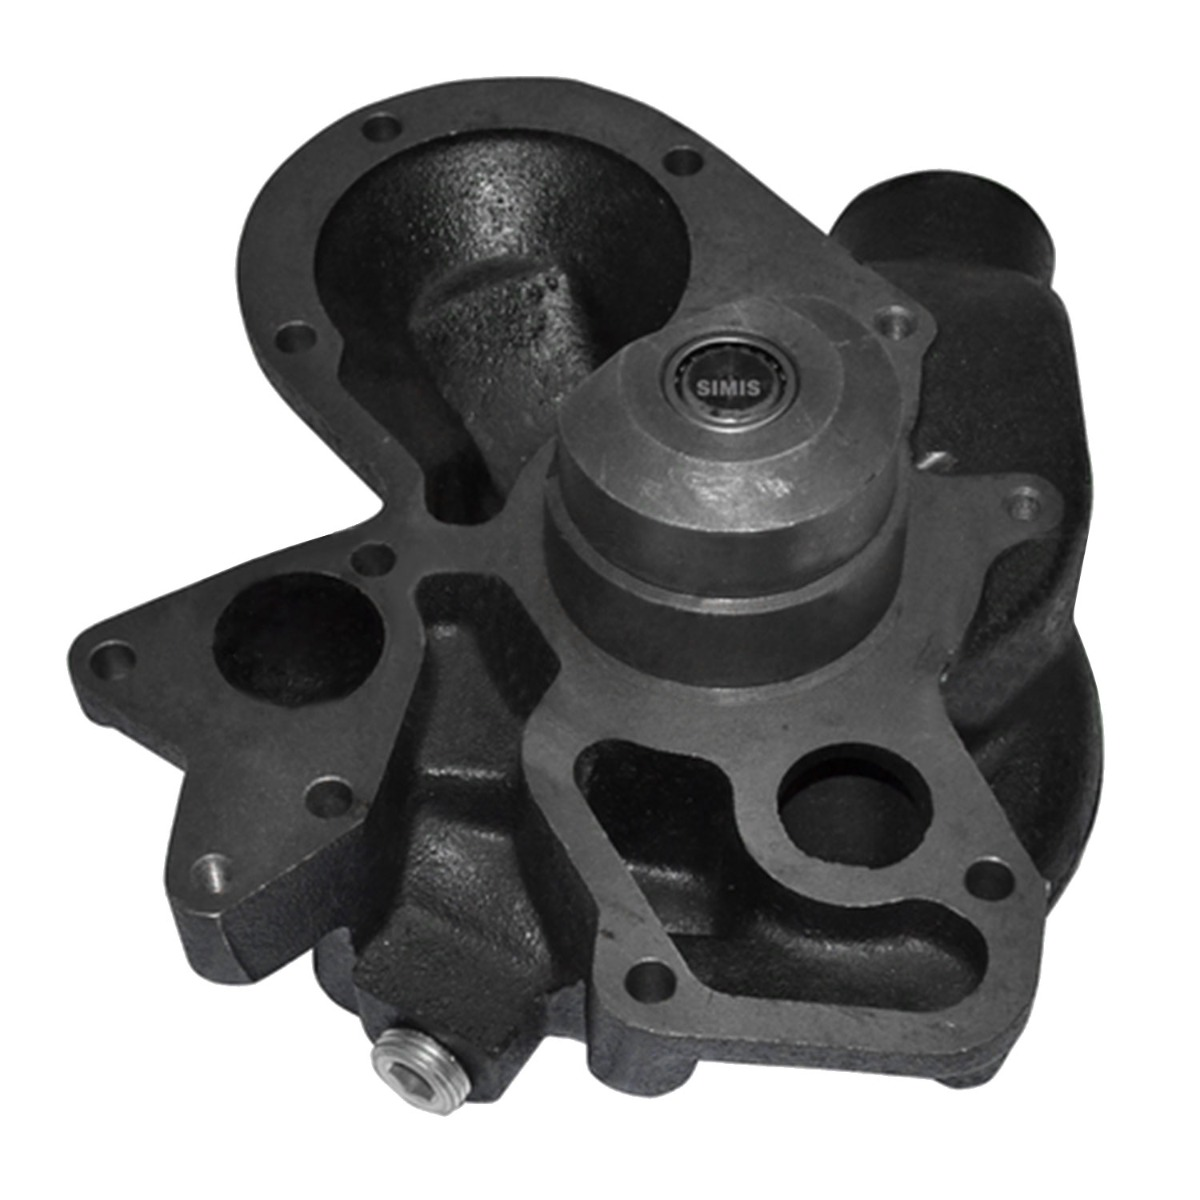 Water Pump 2558-100 Compatible with Perkins 1004.4/1004.4t V82